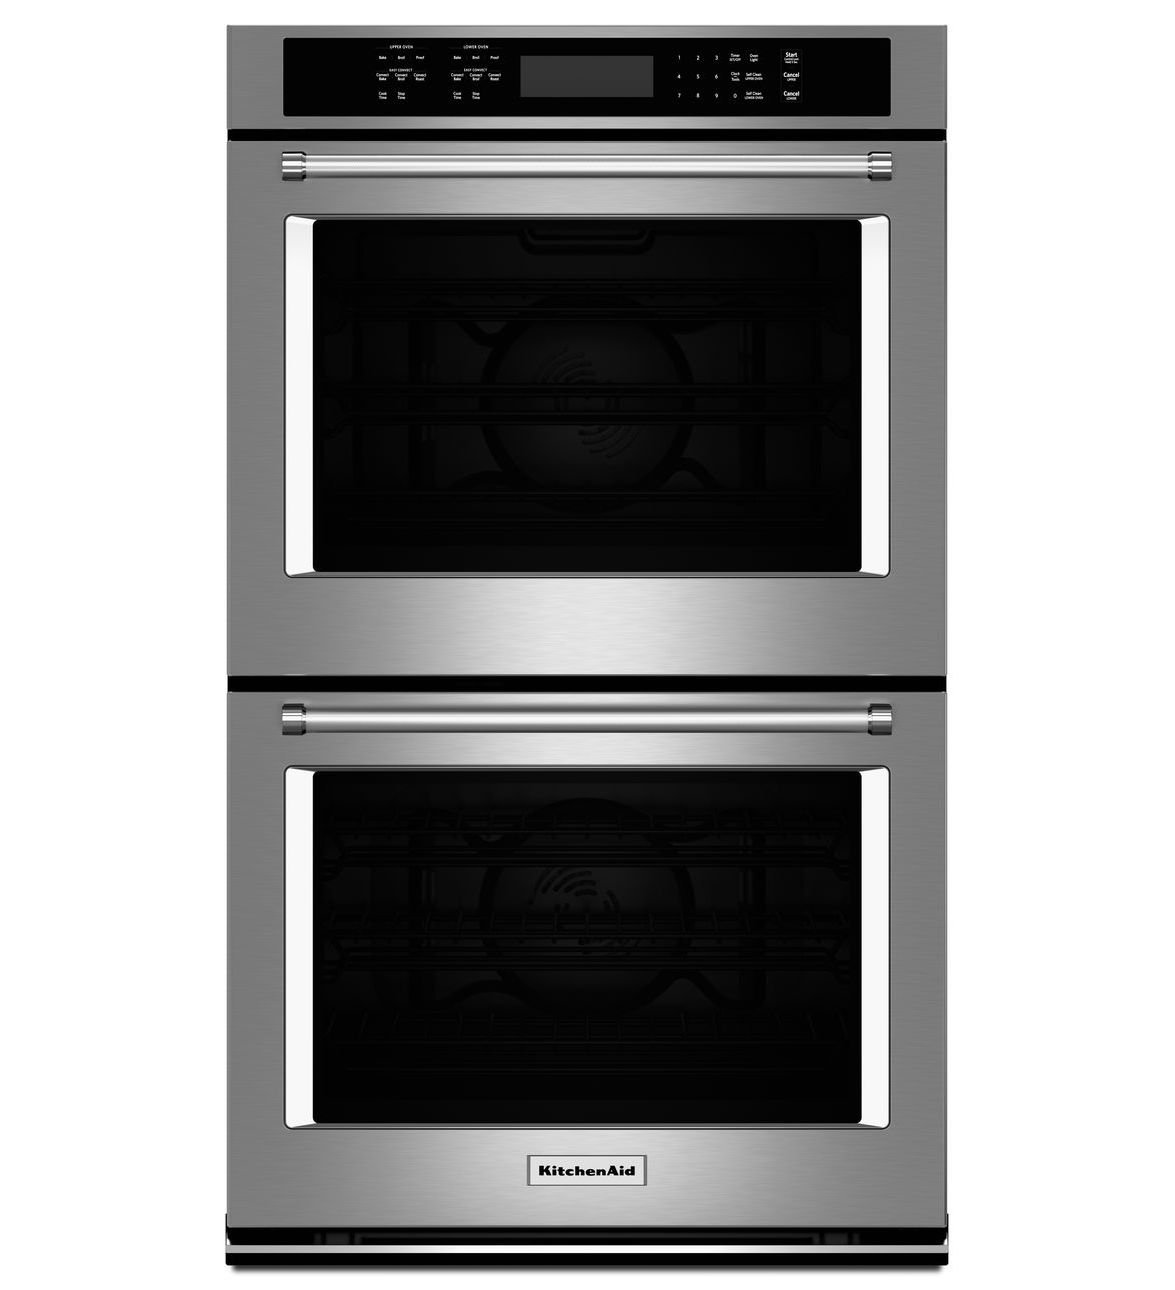 KitchenAid KODE507ESS 4.3 cu. ft. Each Double Wall Ov by KitchenAid